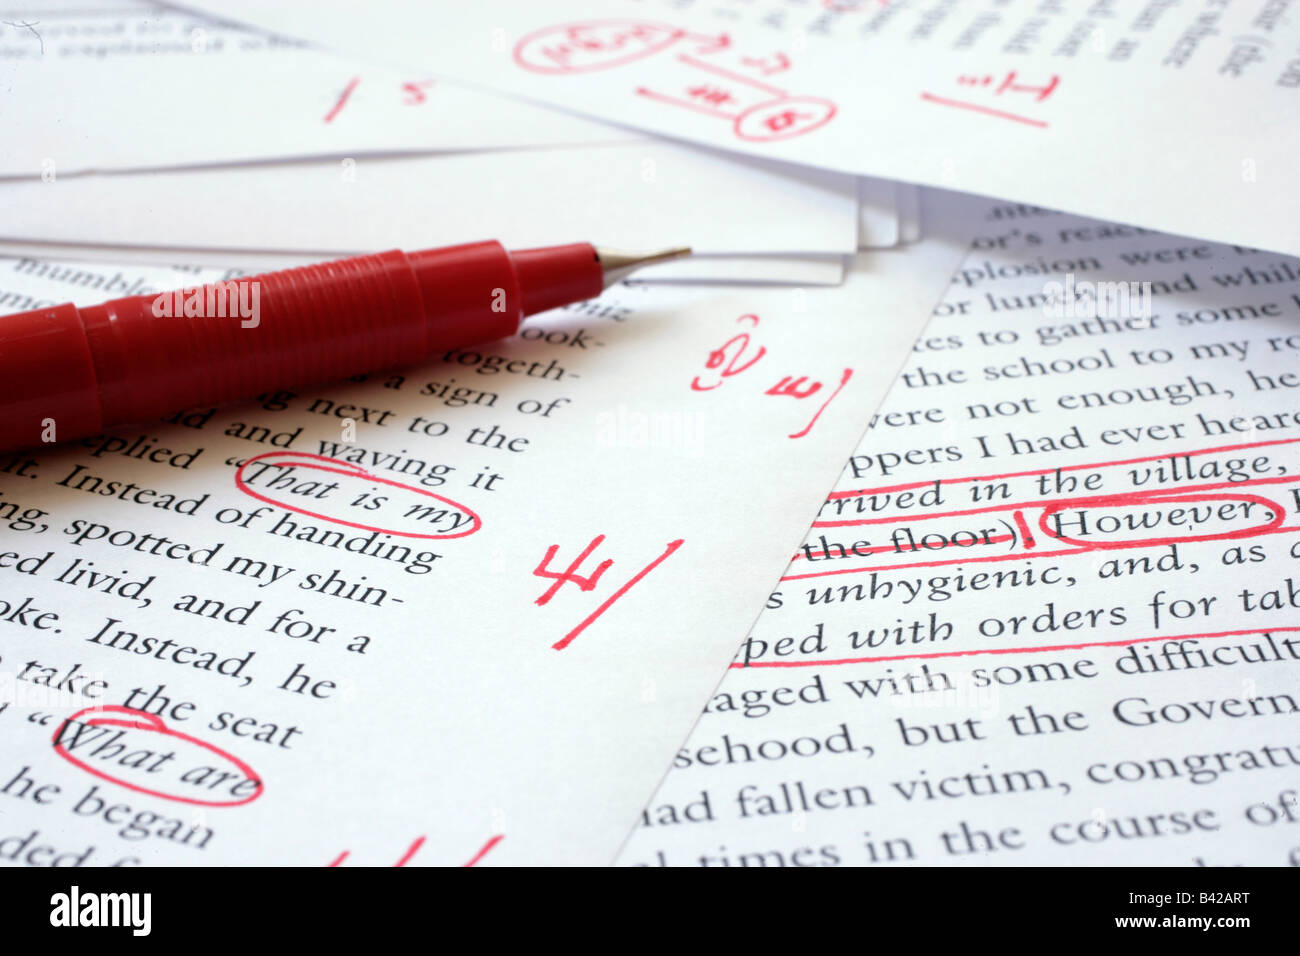 Editing an English language document - Stock Image